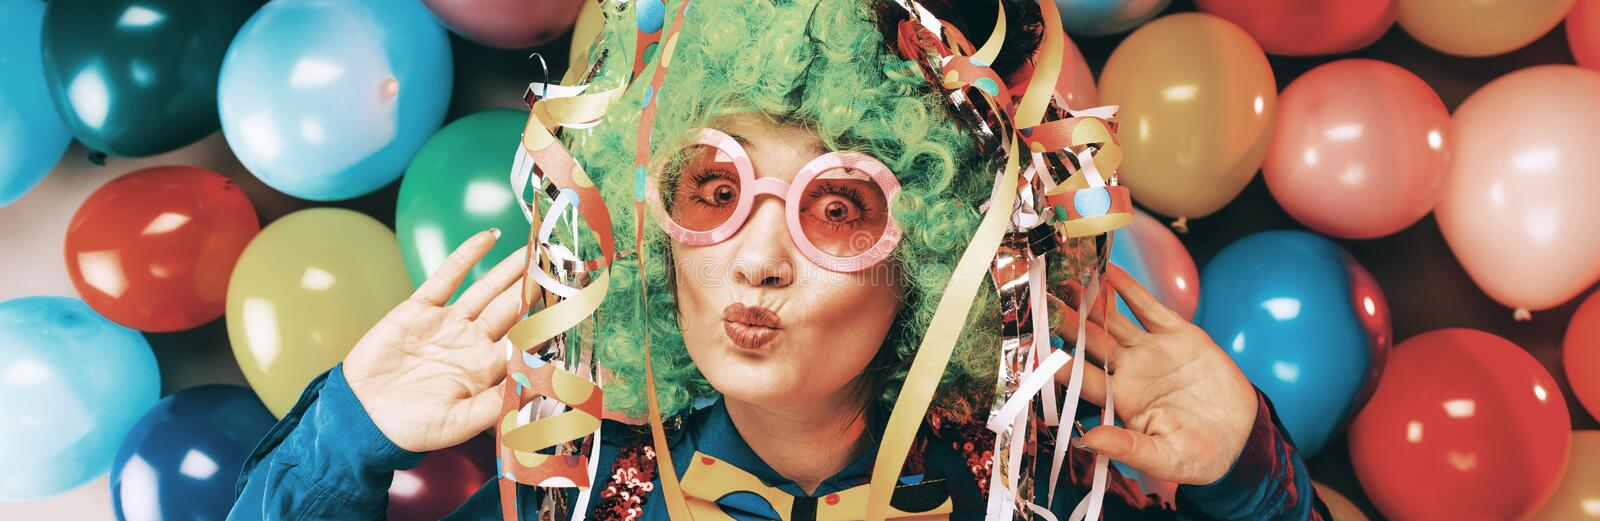 Crazy Young Party Man - Photo Booth Photo royalty free stock images